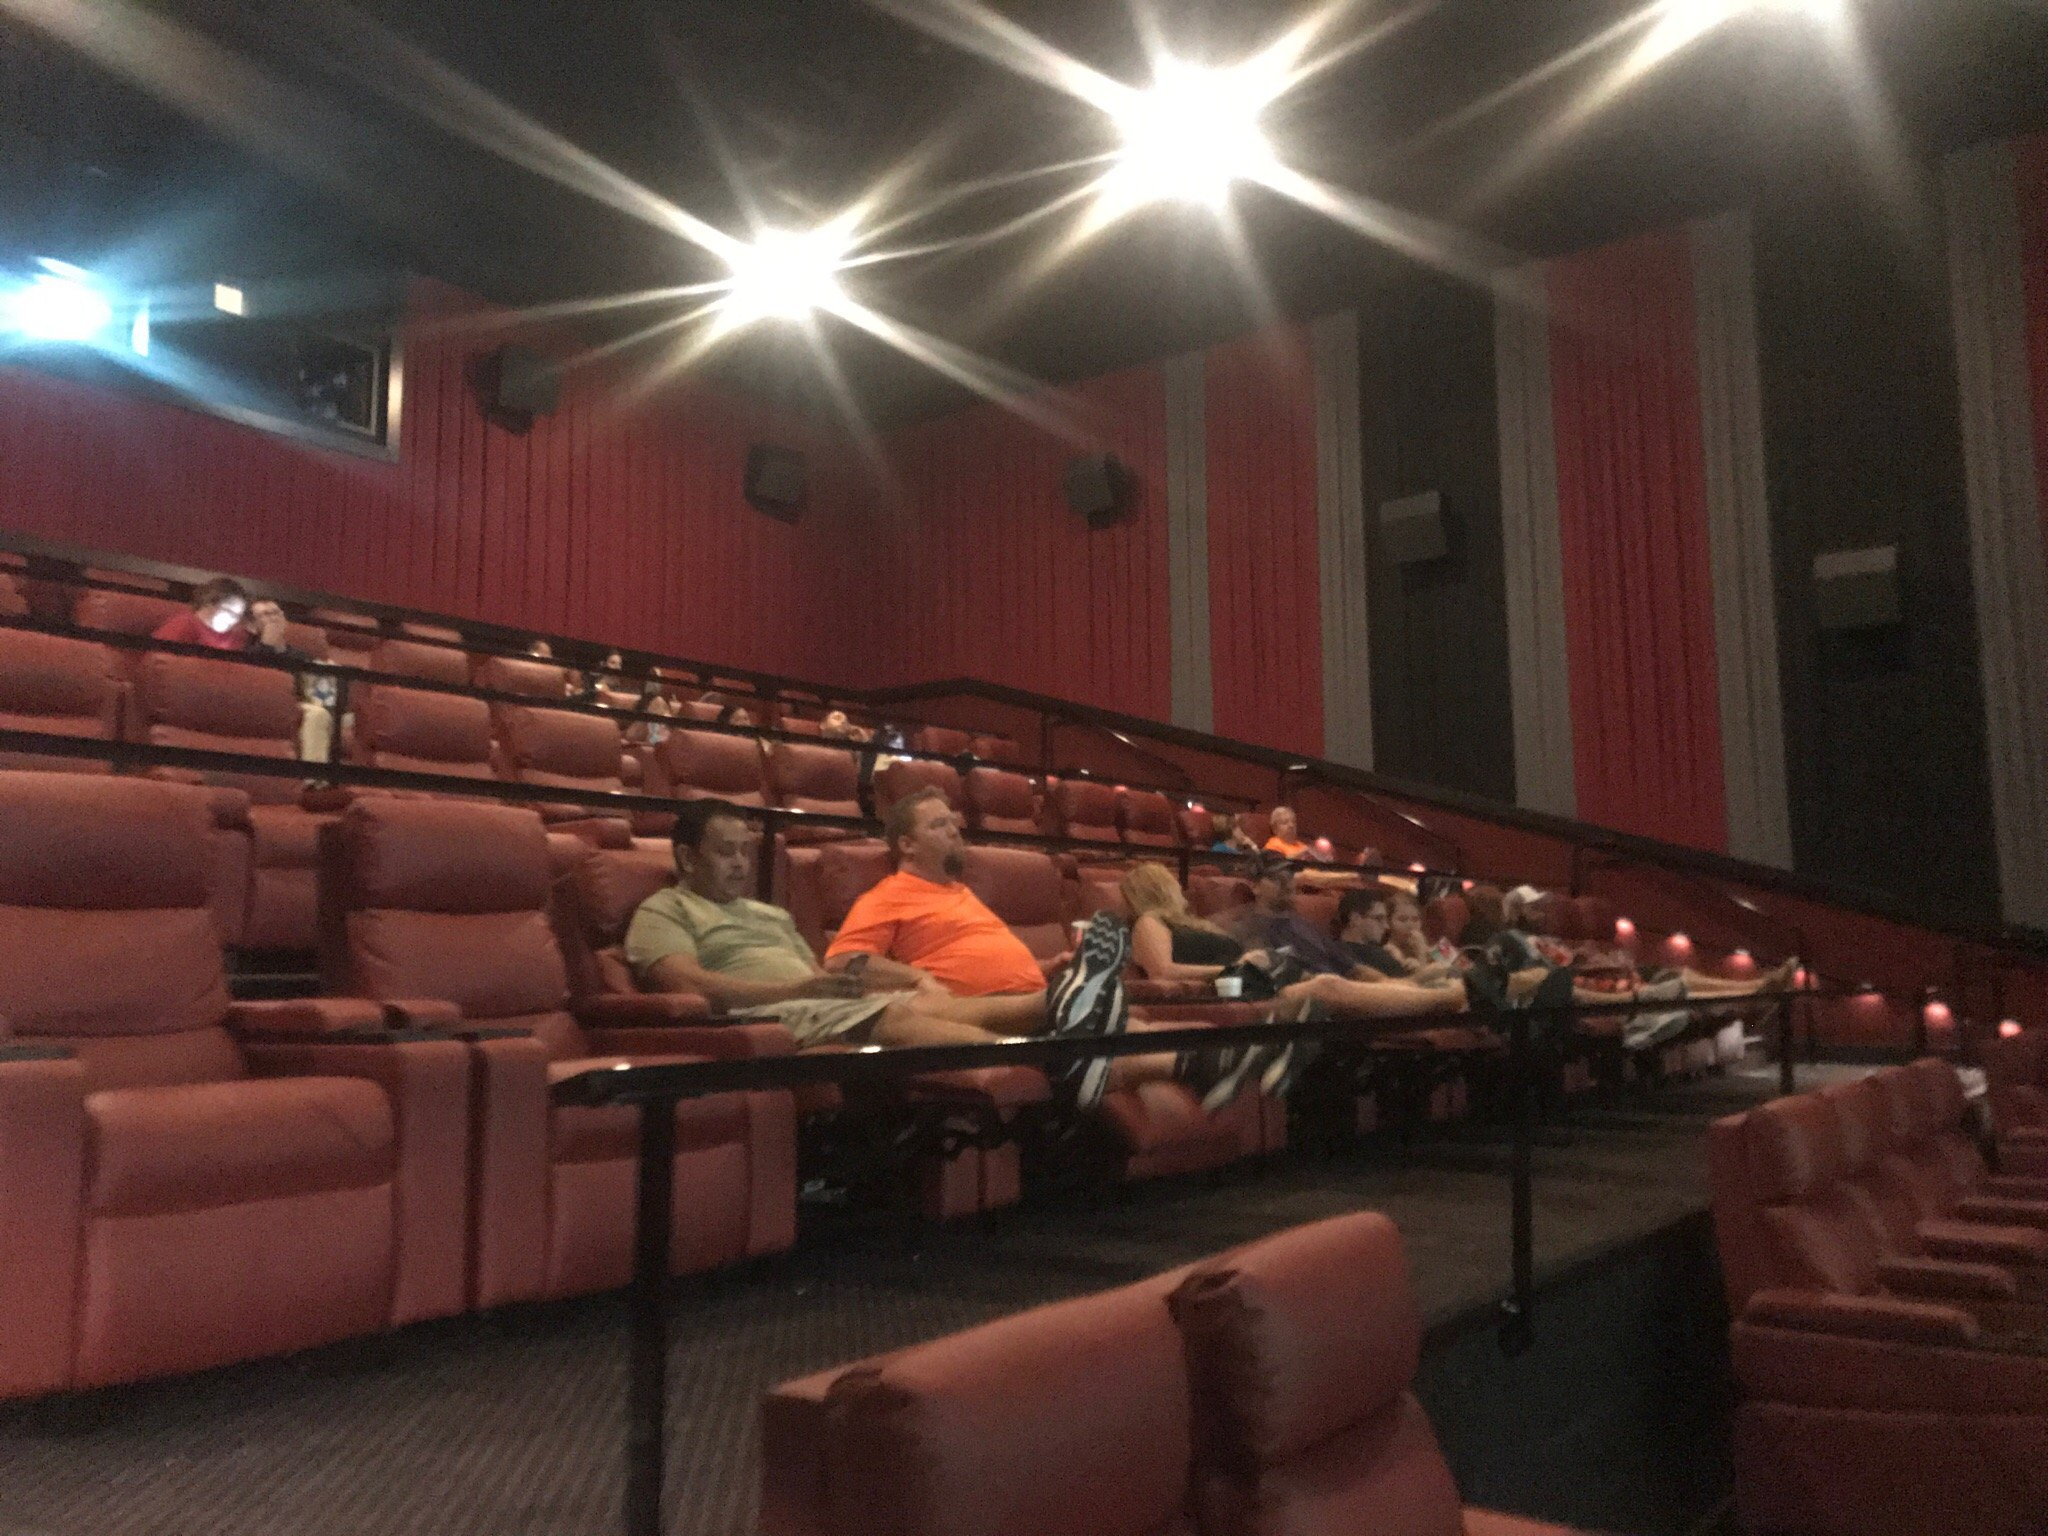 wehrenbergs theatres ronnies 20 cine imax in st louis